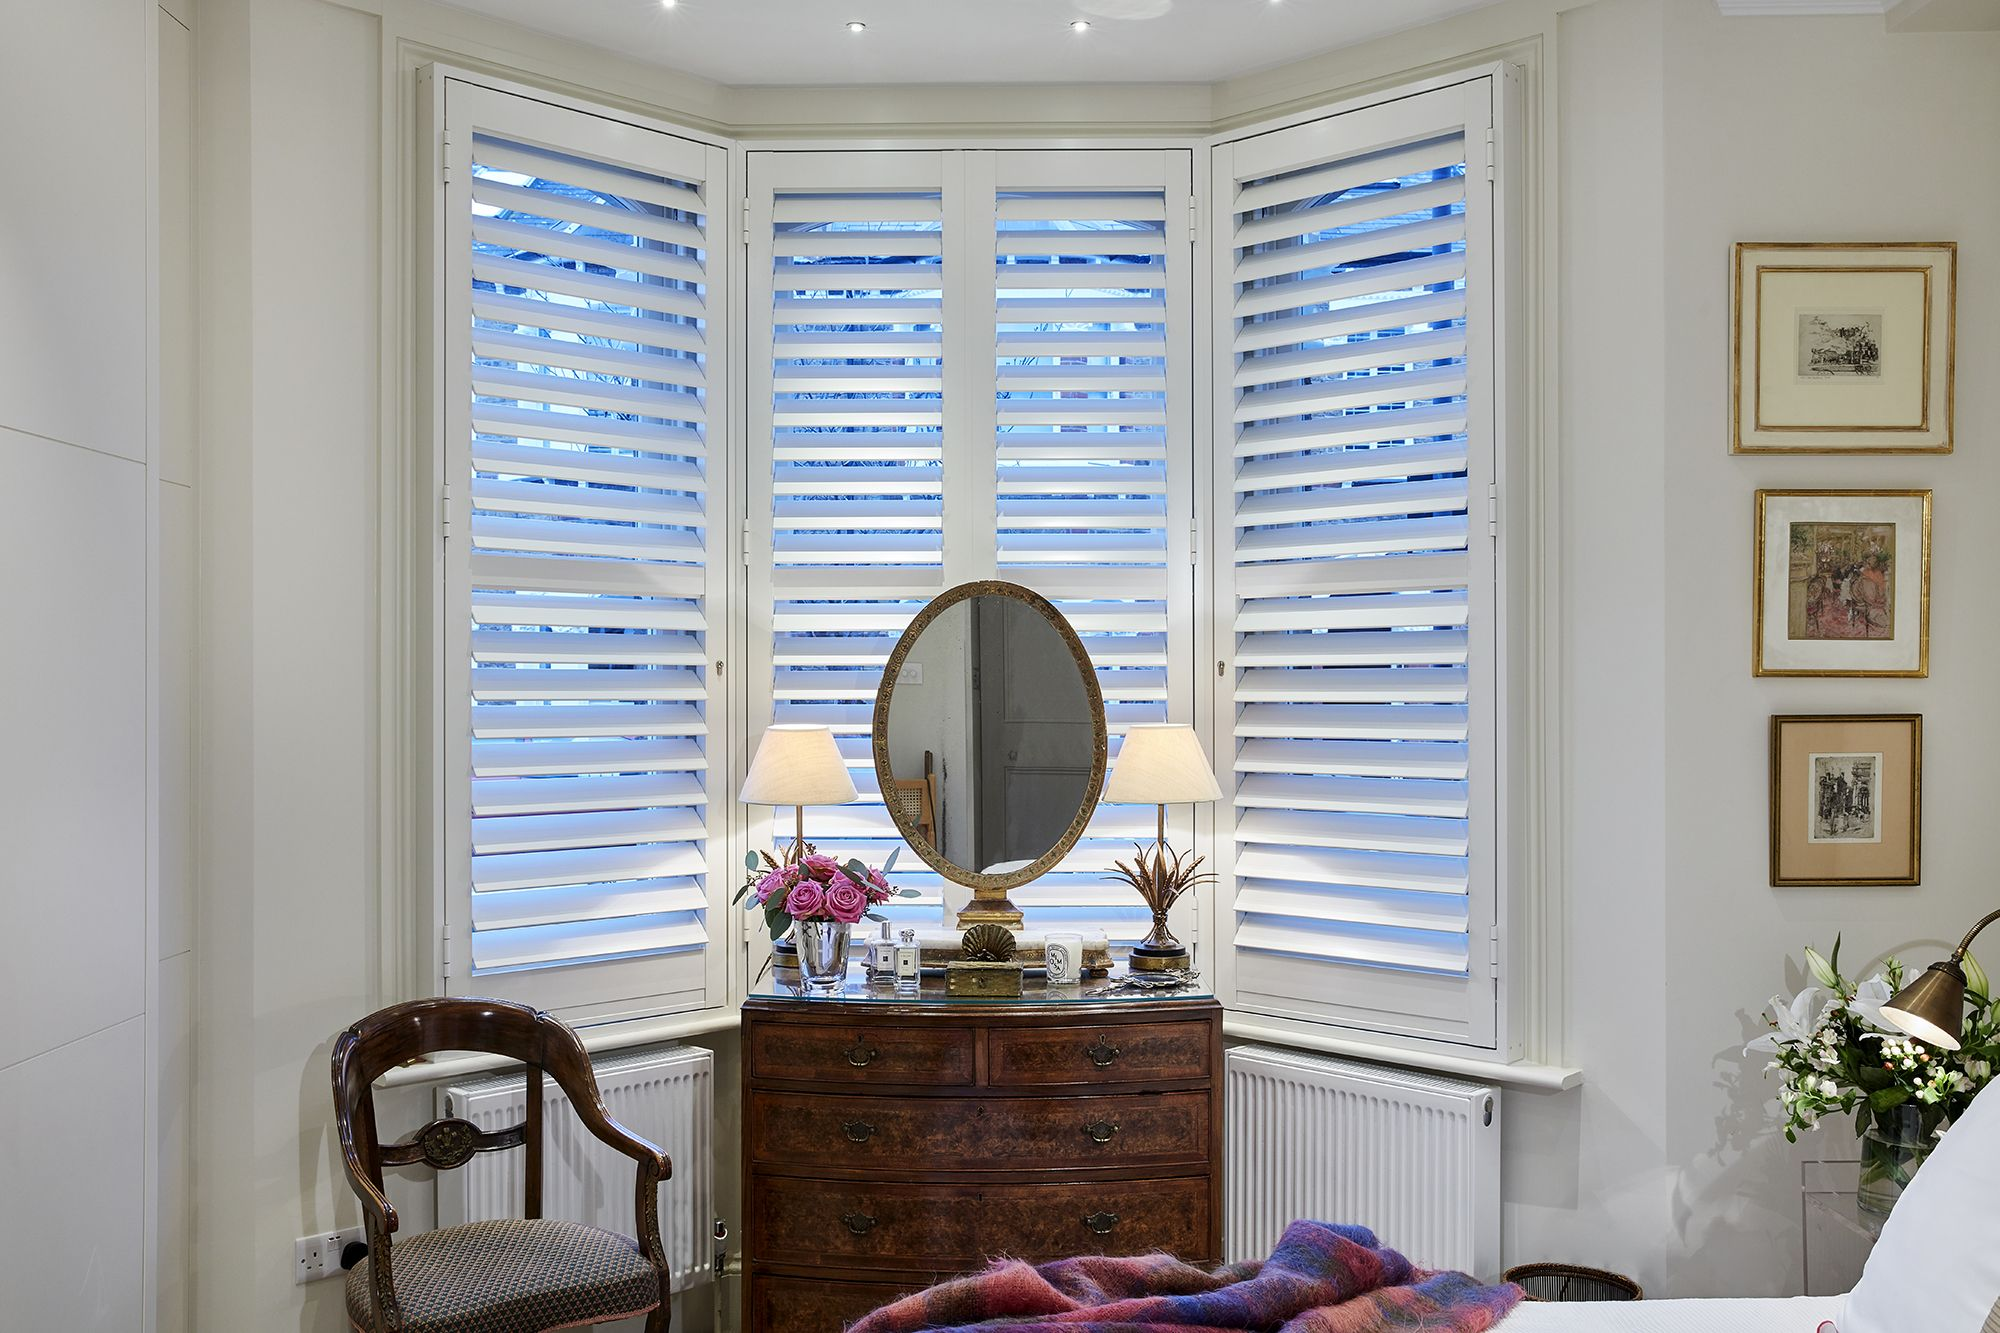 Aluminium Shutters By Plantation Shutters Ltd